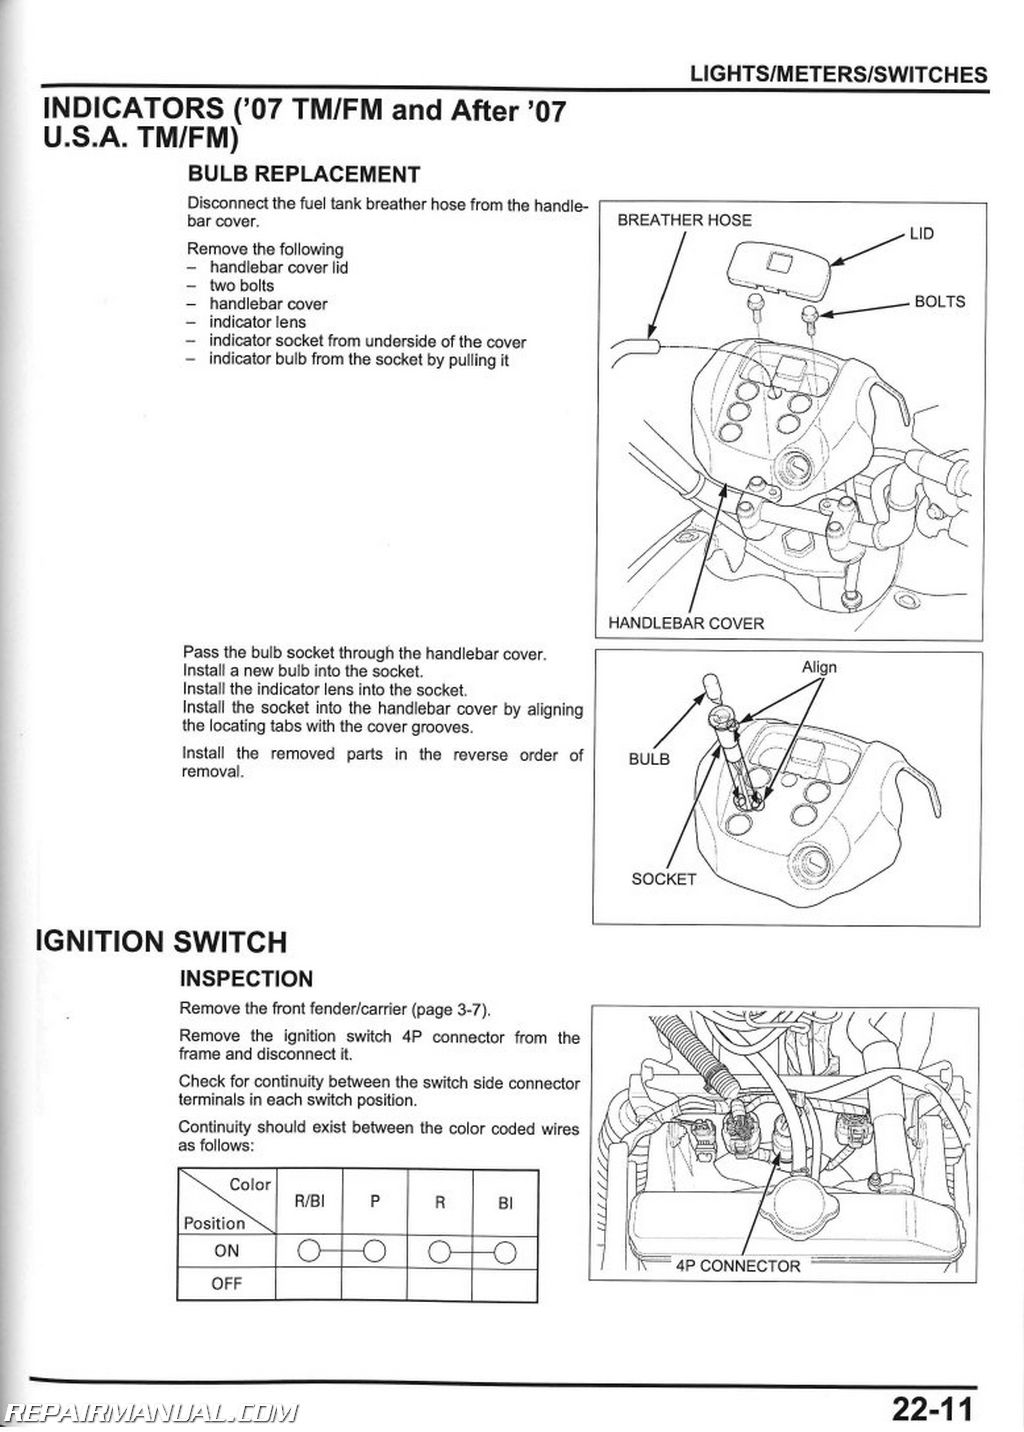 Honda Rancher Carburetor Diagram : honda, rancher, carburetor, diagram, 2007-2013, Honda, TRX420FE, Rancher, Service, Manual